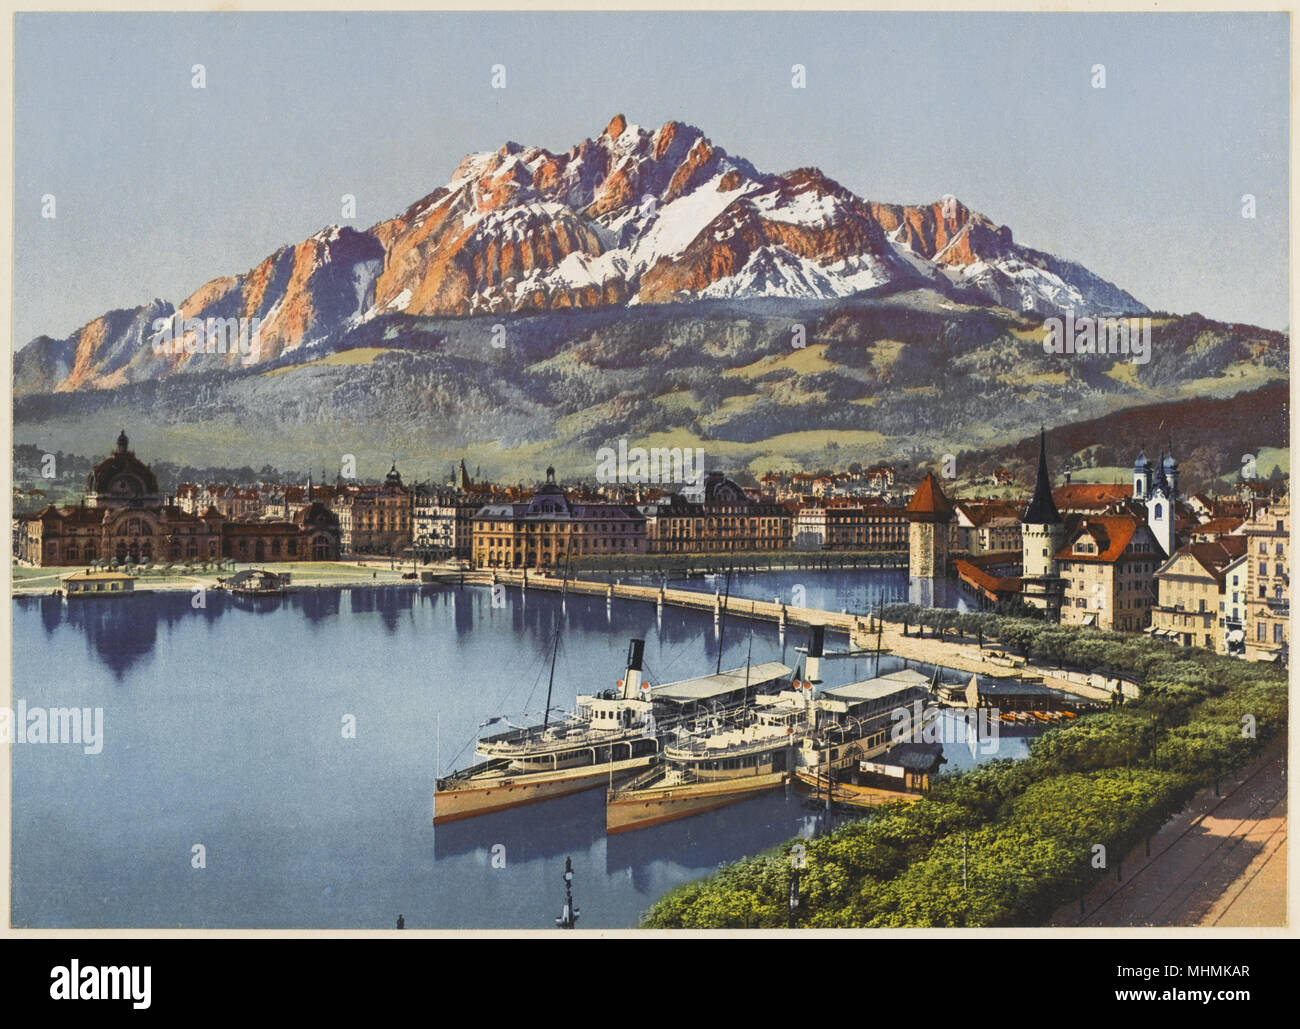 Lucerne and Mount Pilatus       Date: early 20th century - Stock Image